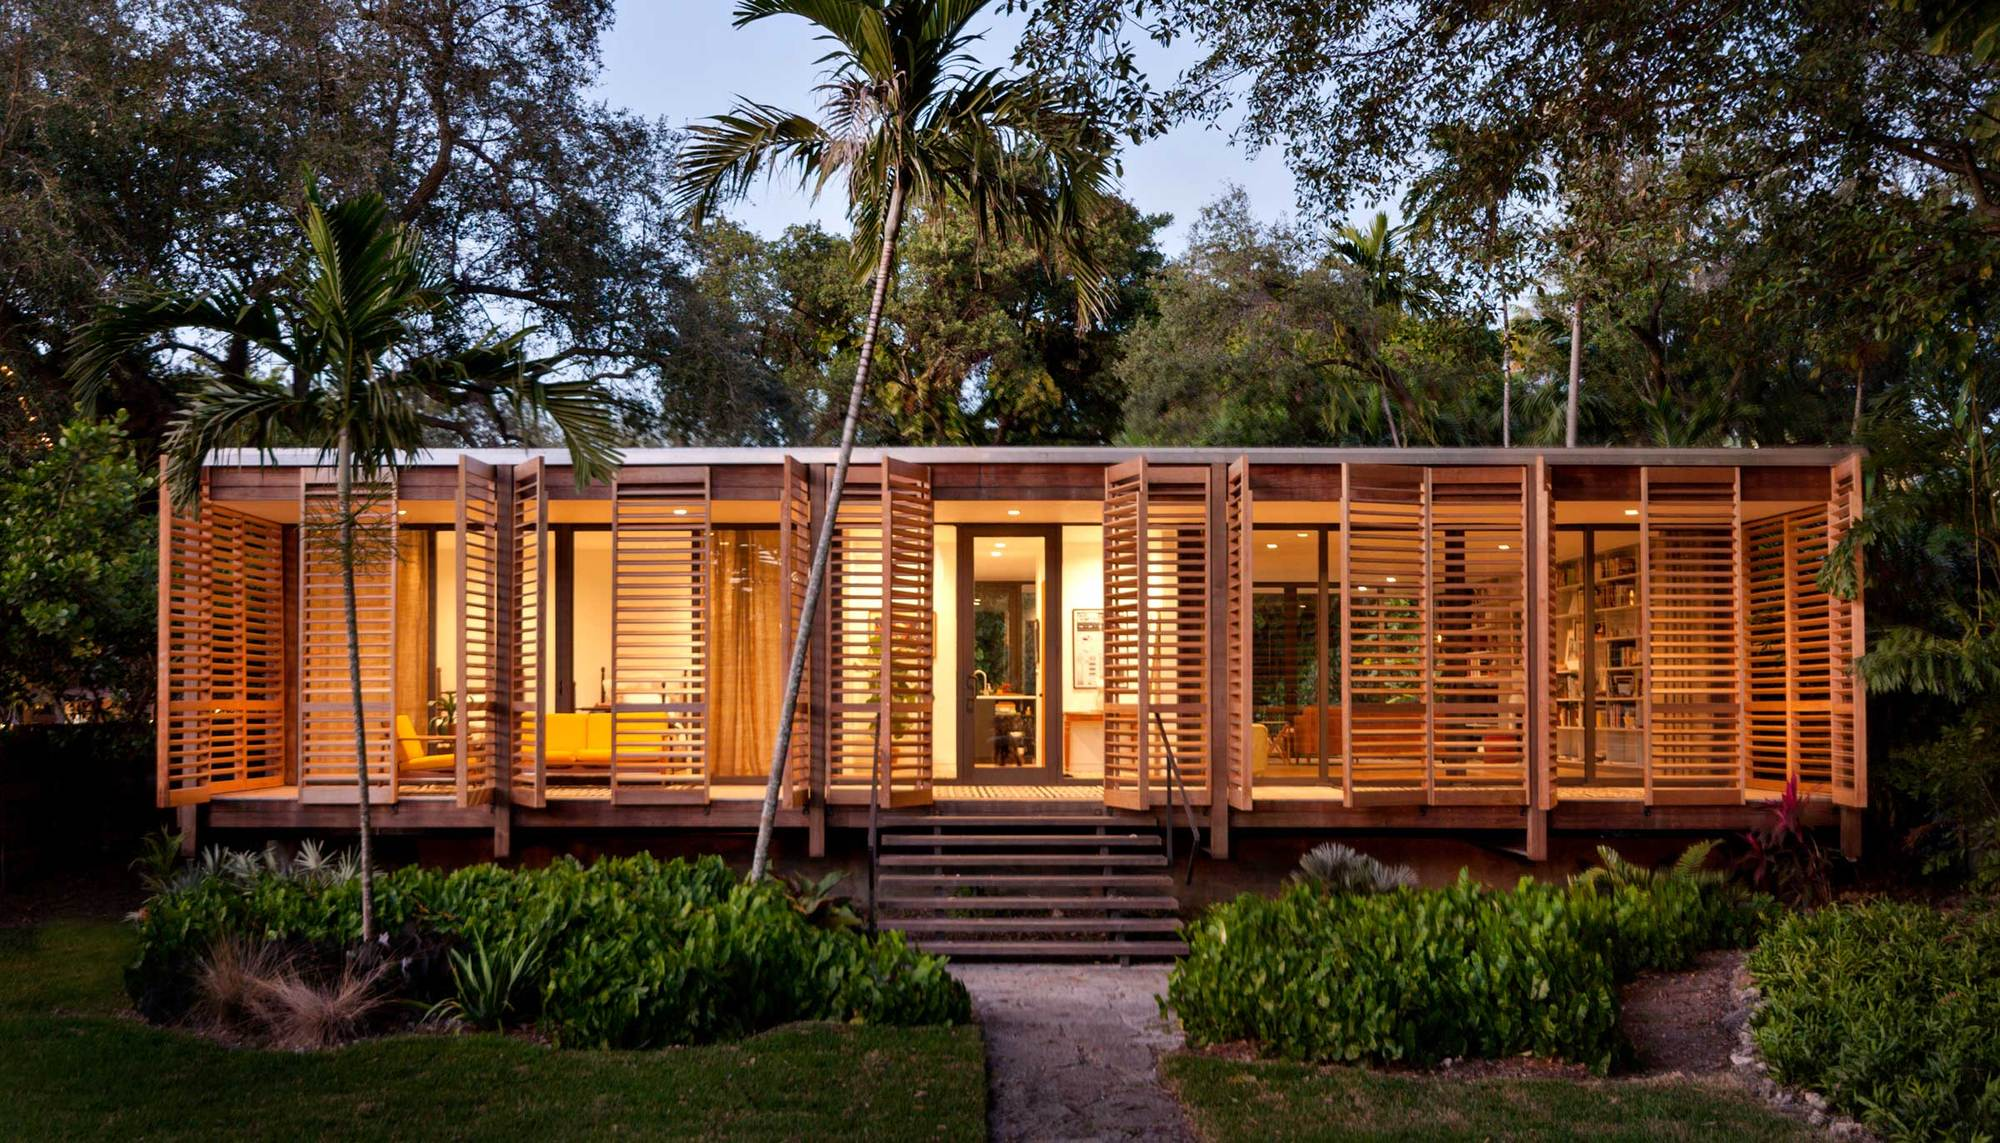 Wooden Tropical Brillhart House Located in Miami by Brillhart Architecture-12